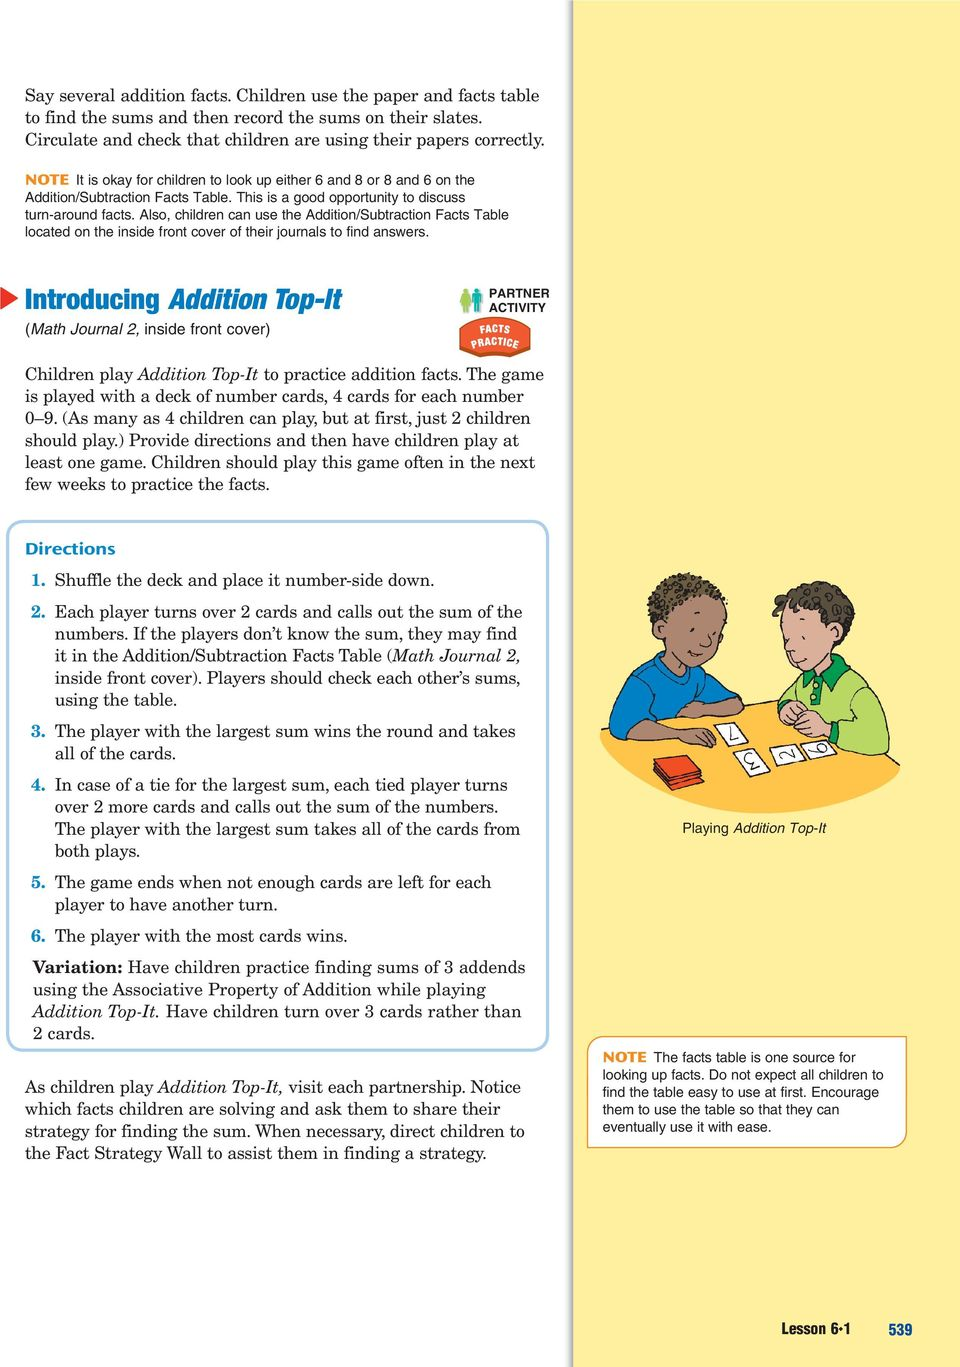 Also, children can use the Addition/Subtraction Facts Table located on the inside front cover of their journals to find answers.